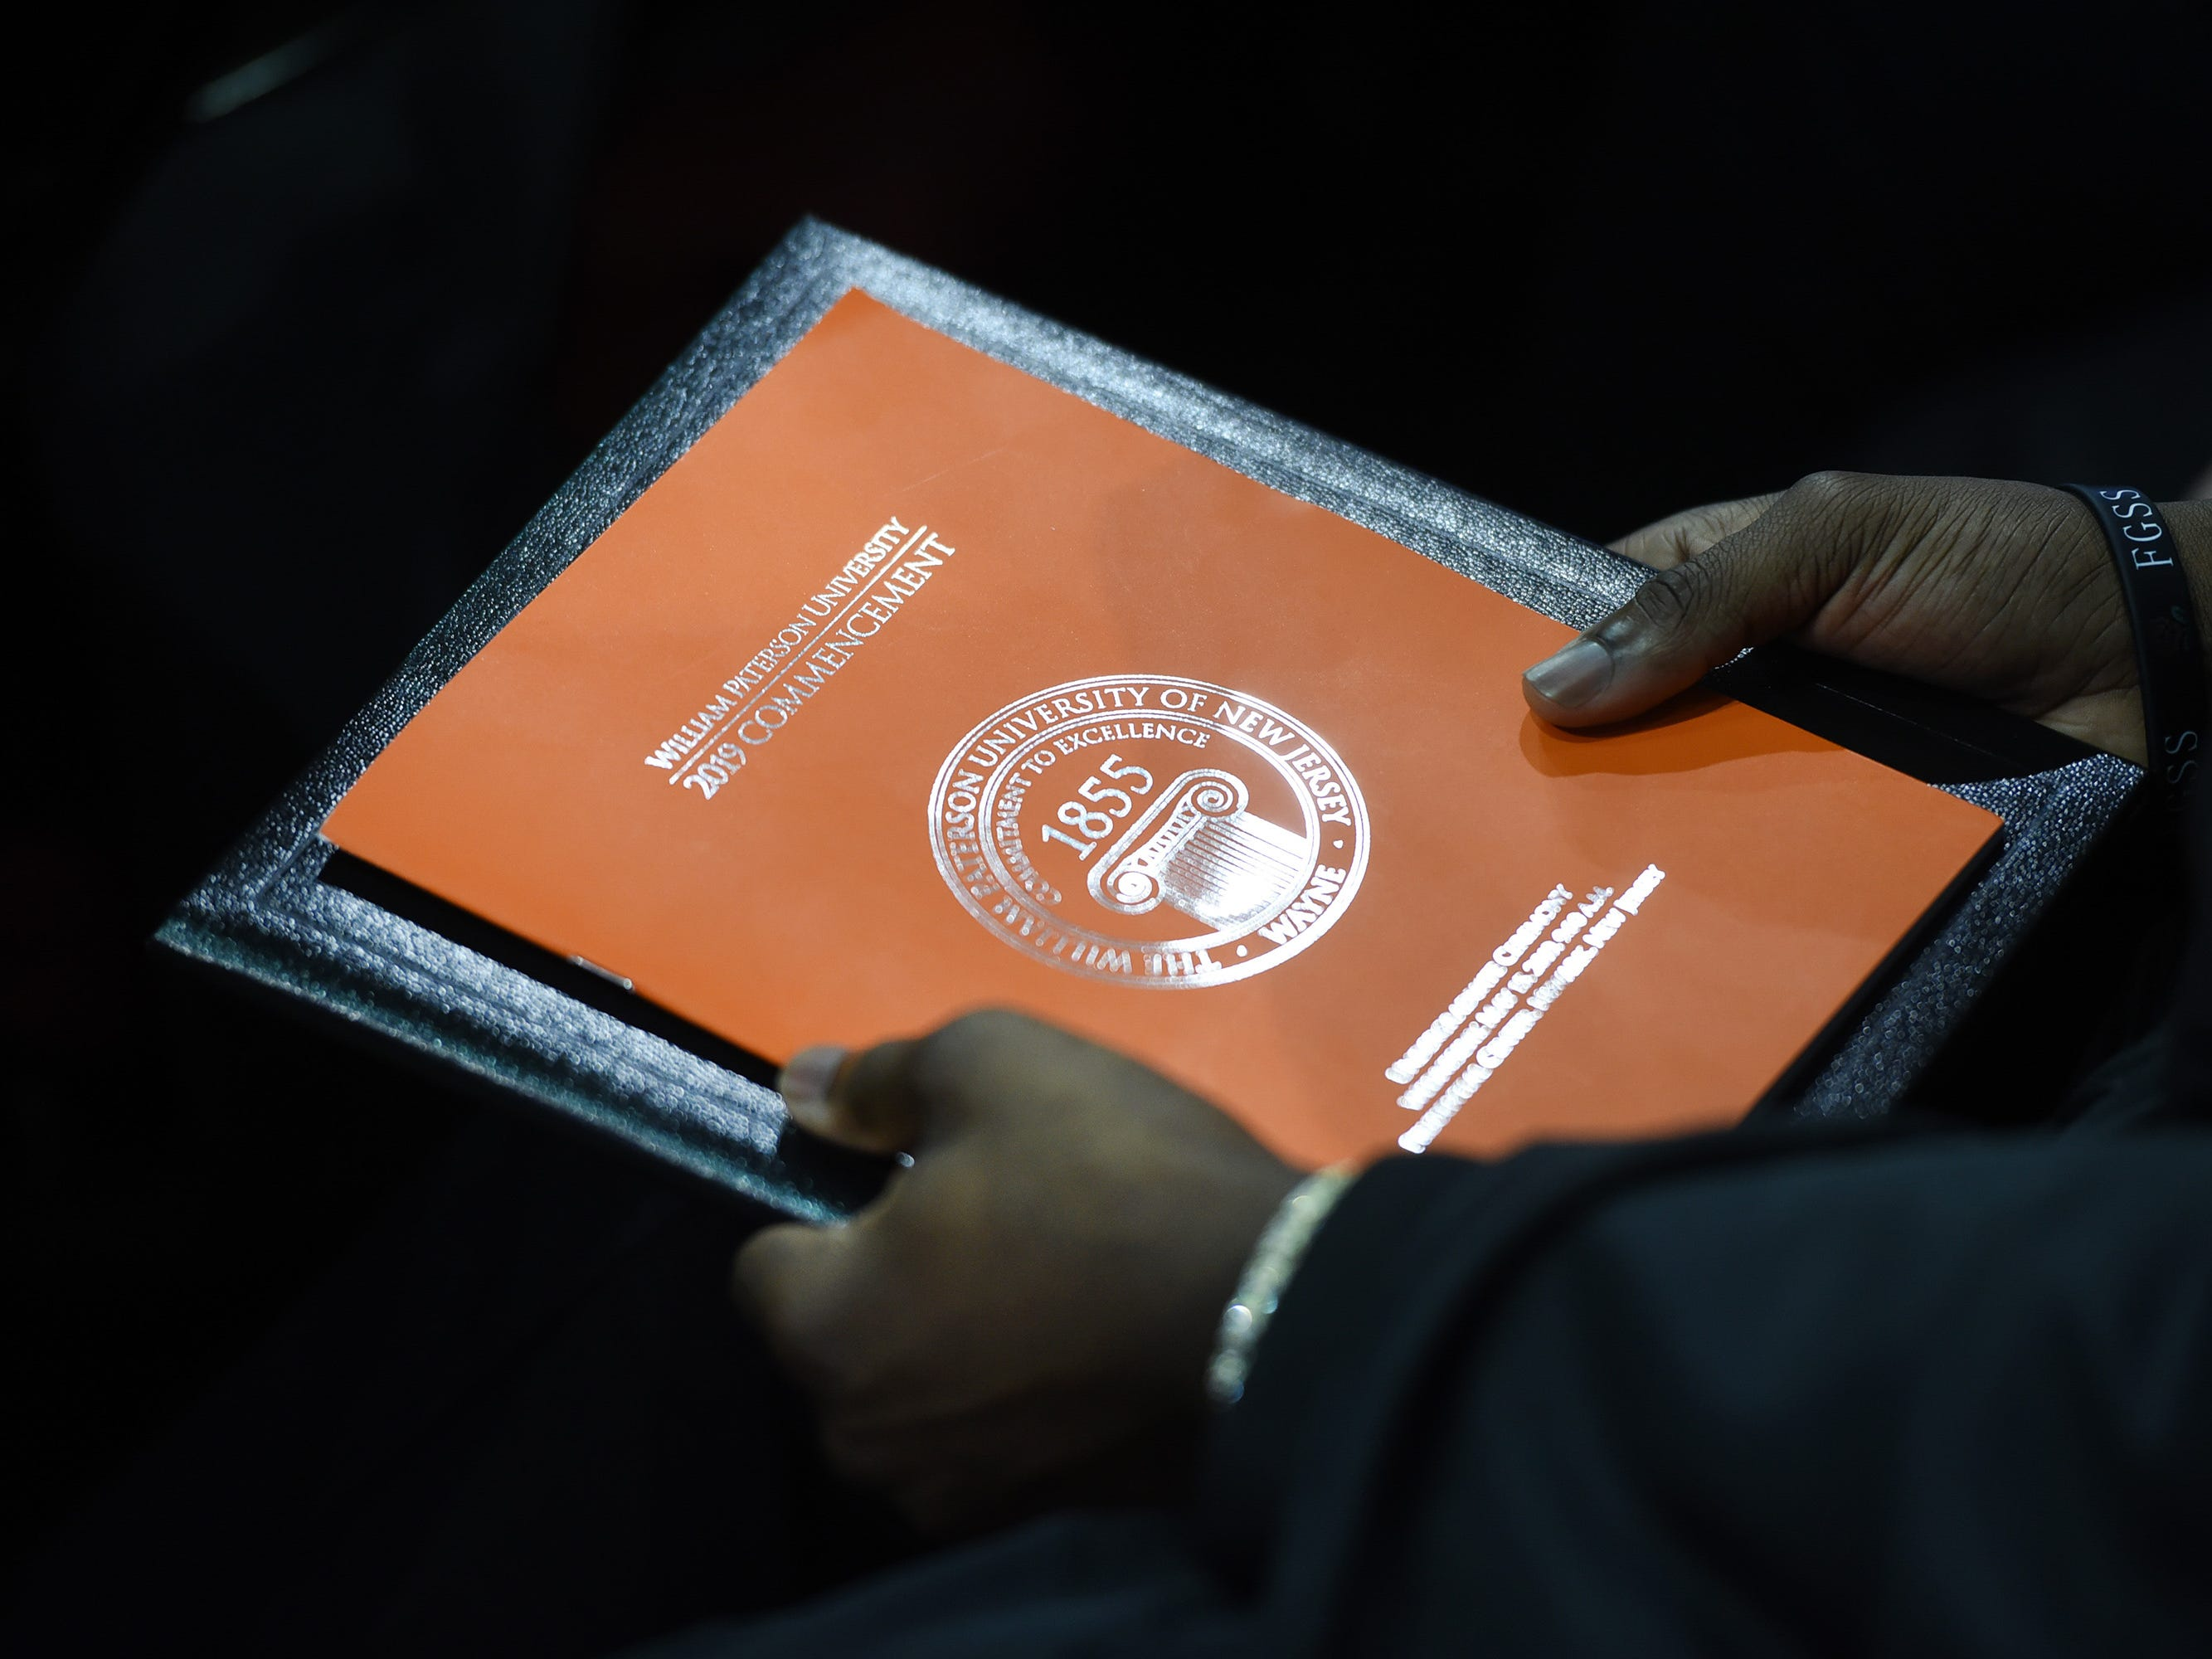 Close up of the program is held by a graduate during the William Paterson University 2019 Commencement at the Prudential Center in Newark on 05/15/19.